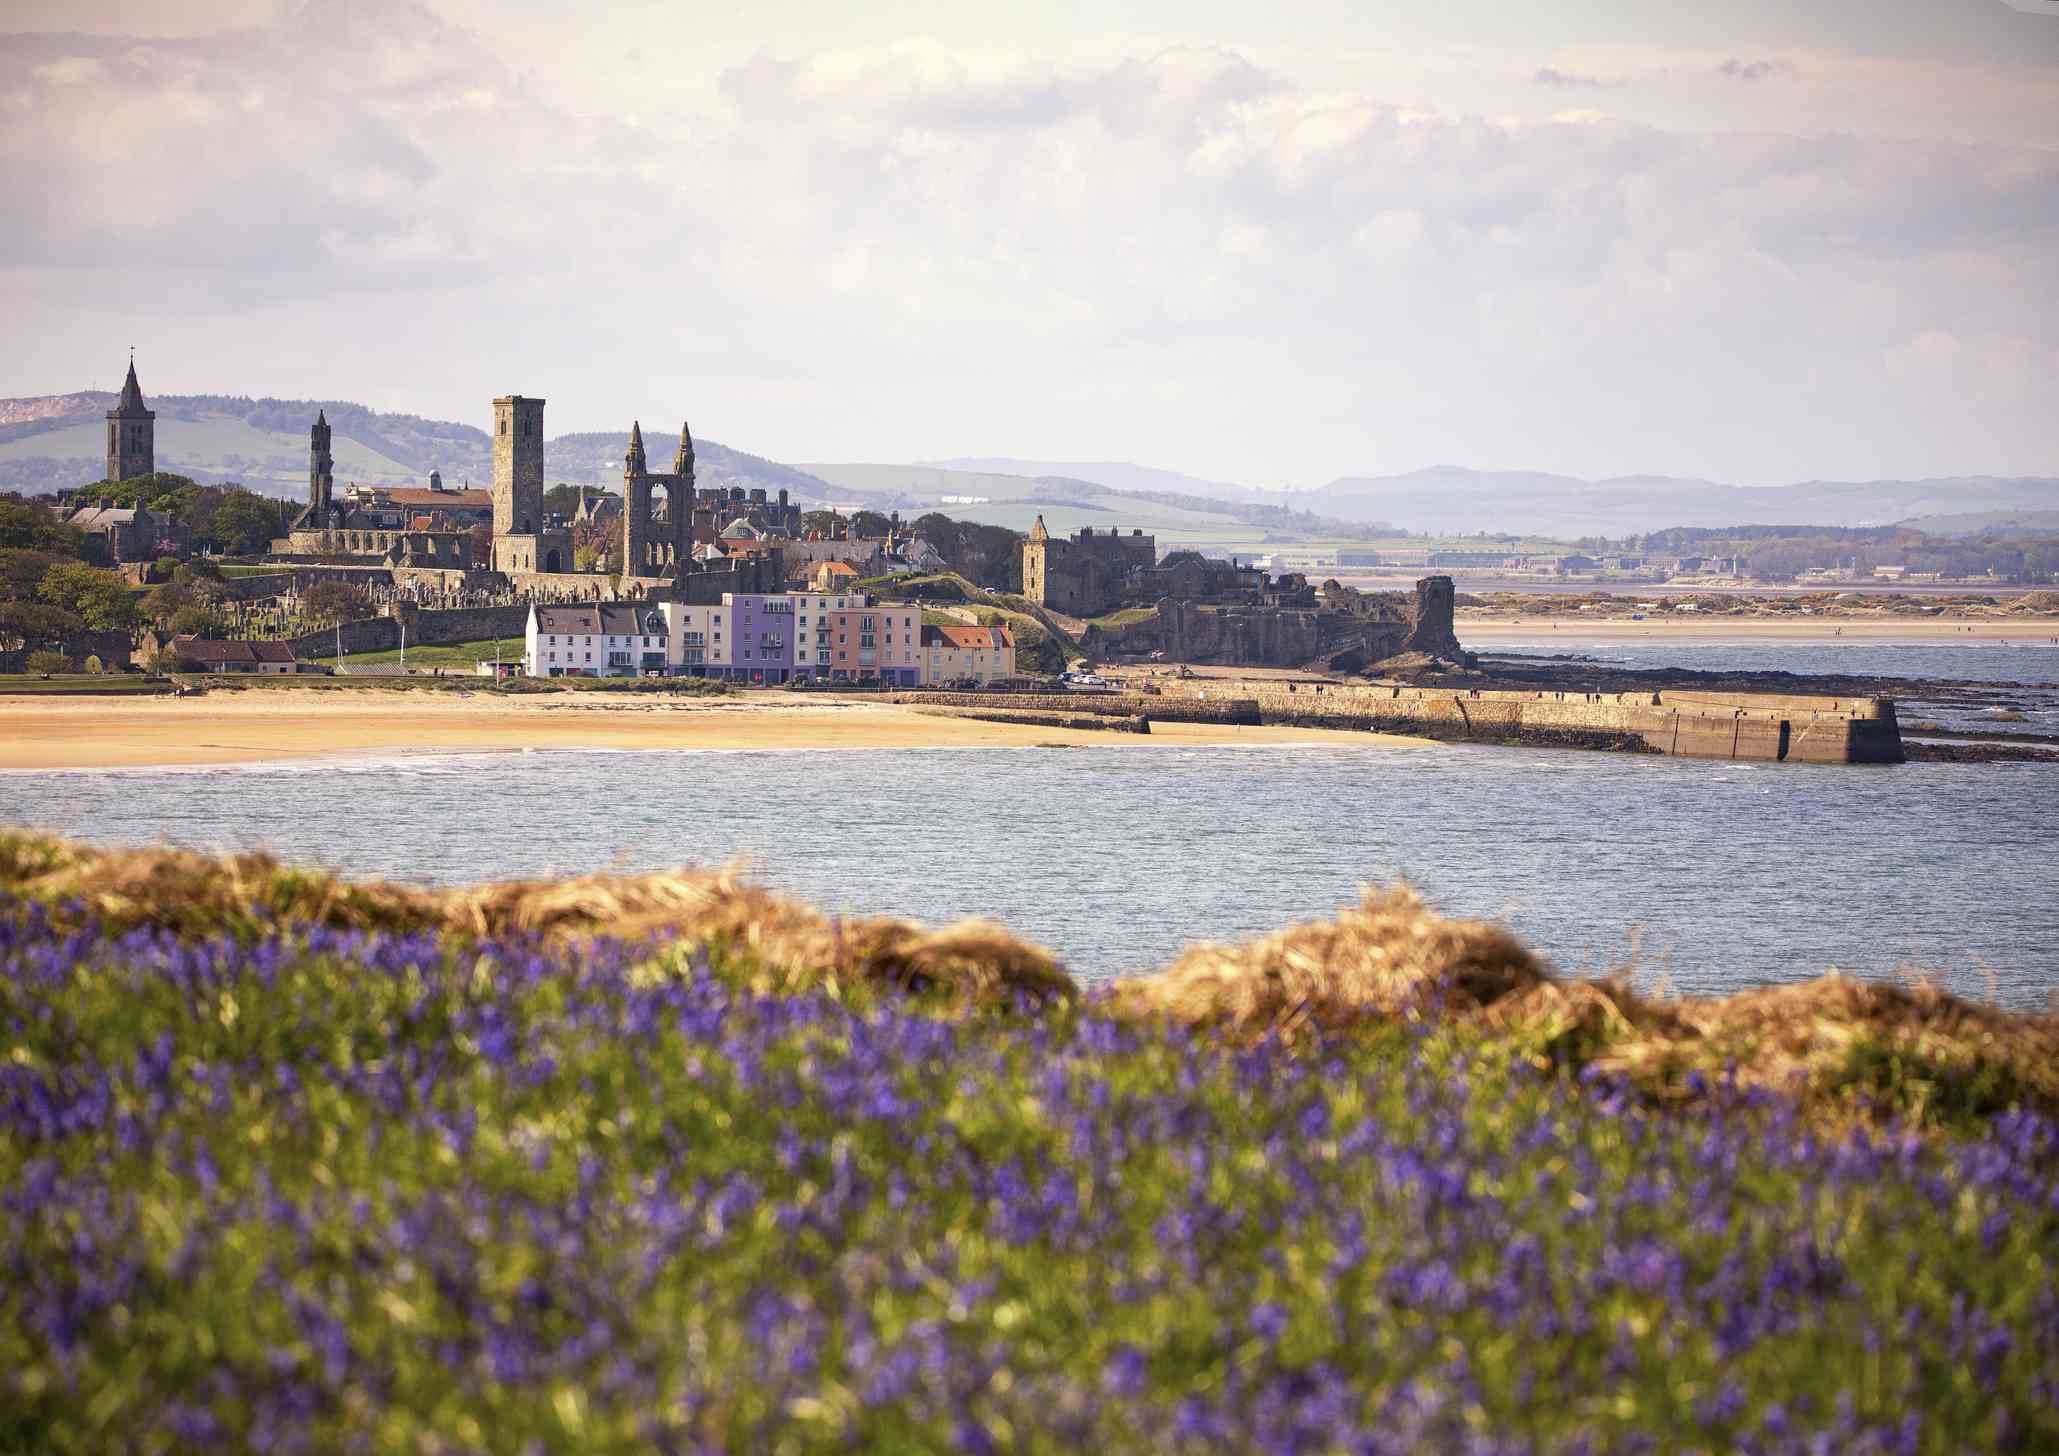 ooking out over the bay towards the town of St Andrews, with a field of bluebell flowers in the foreground